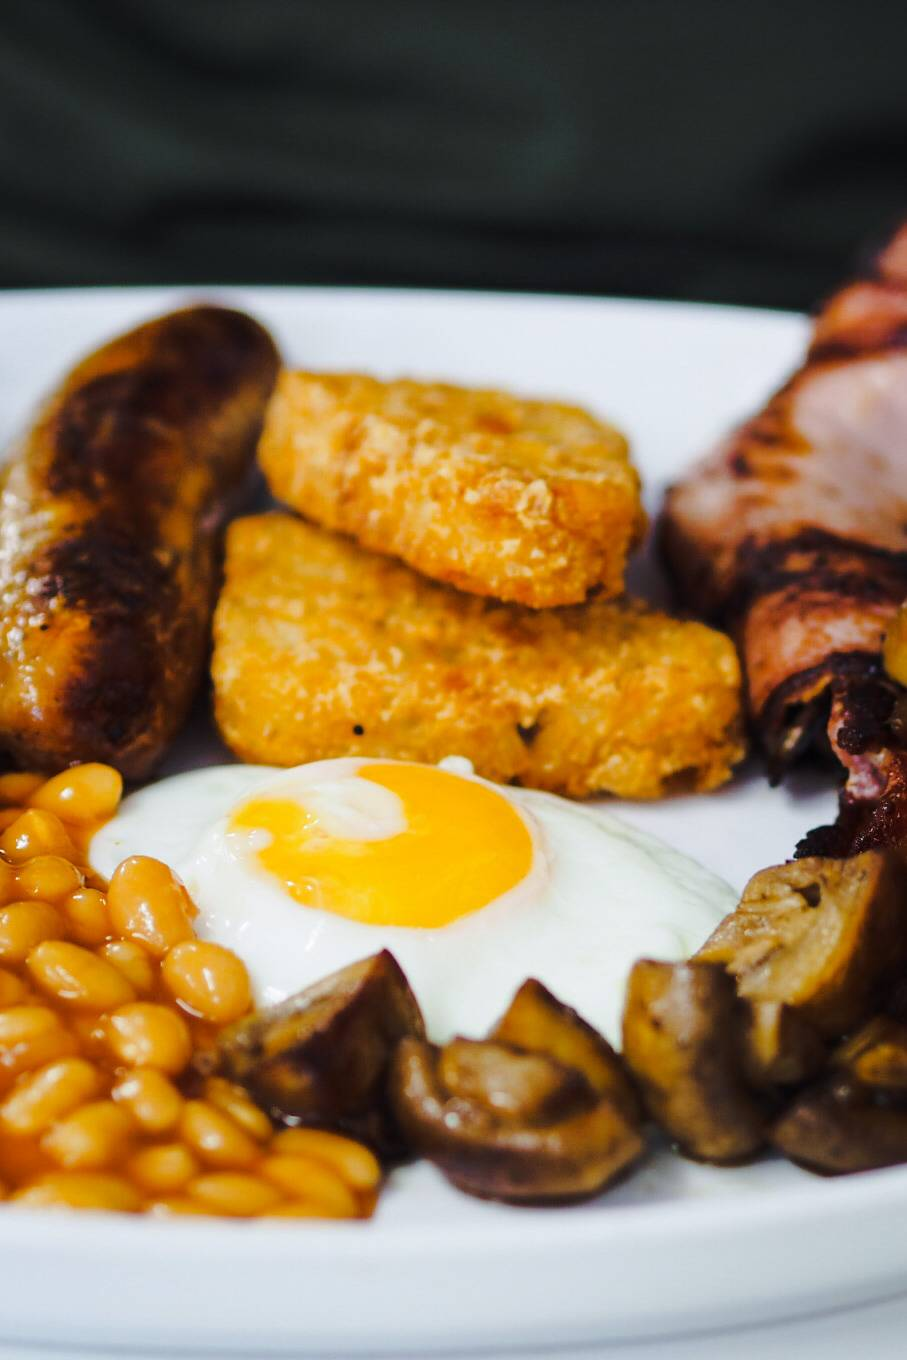 Full English Breakfast at The Super Sausage Cafe